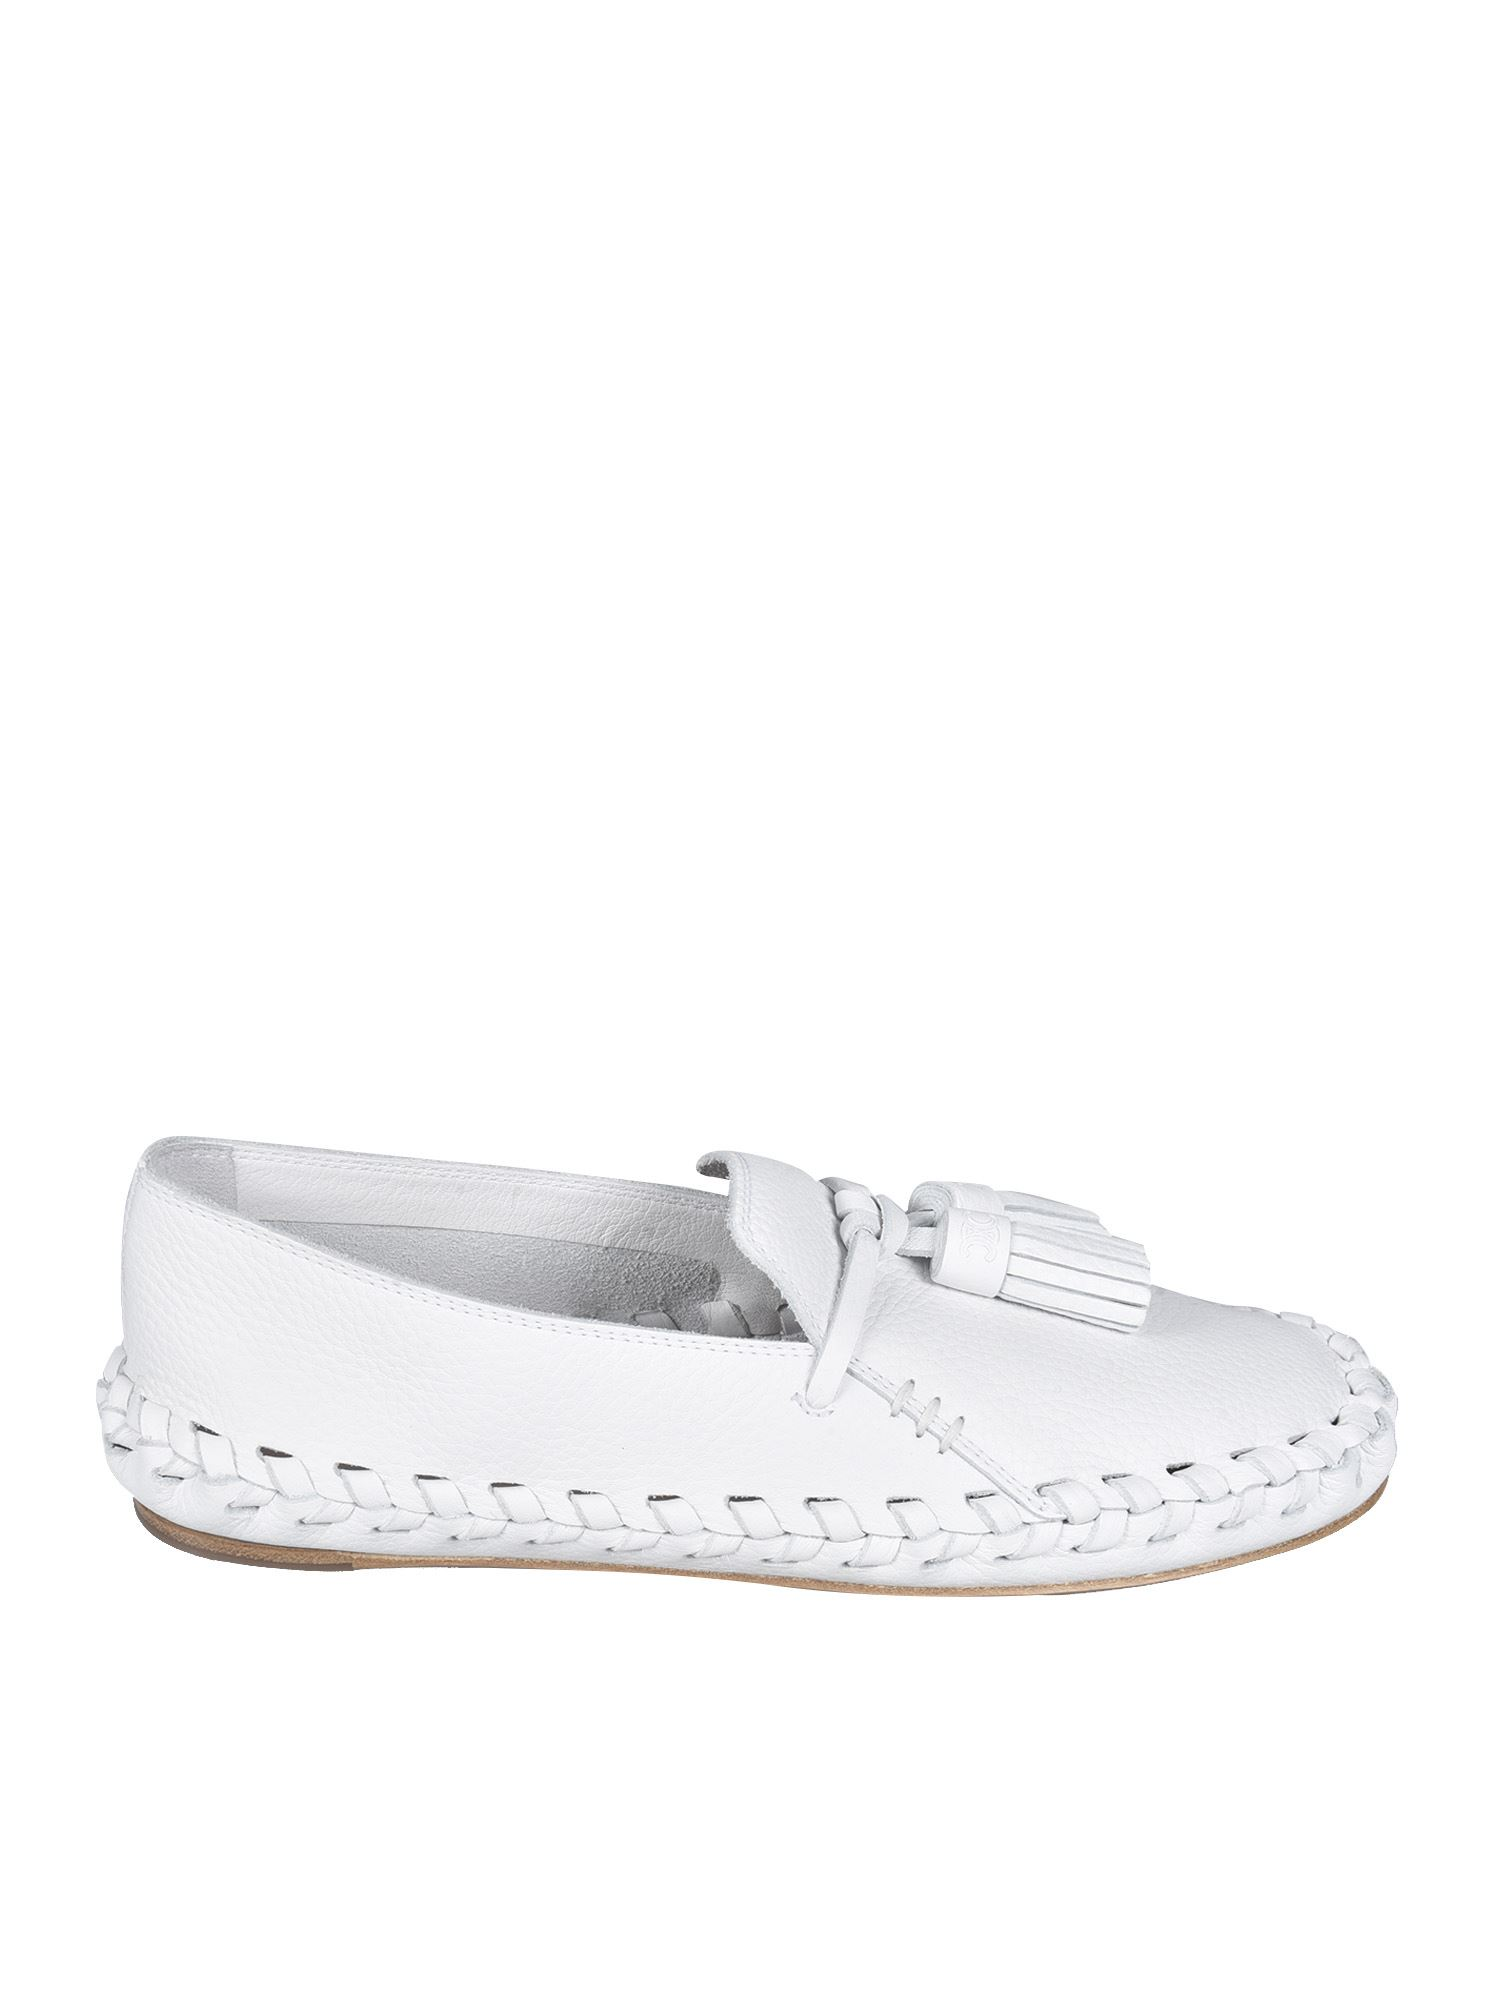 Celine MARLOU LOAFERS IN WHITE